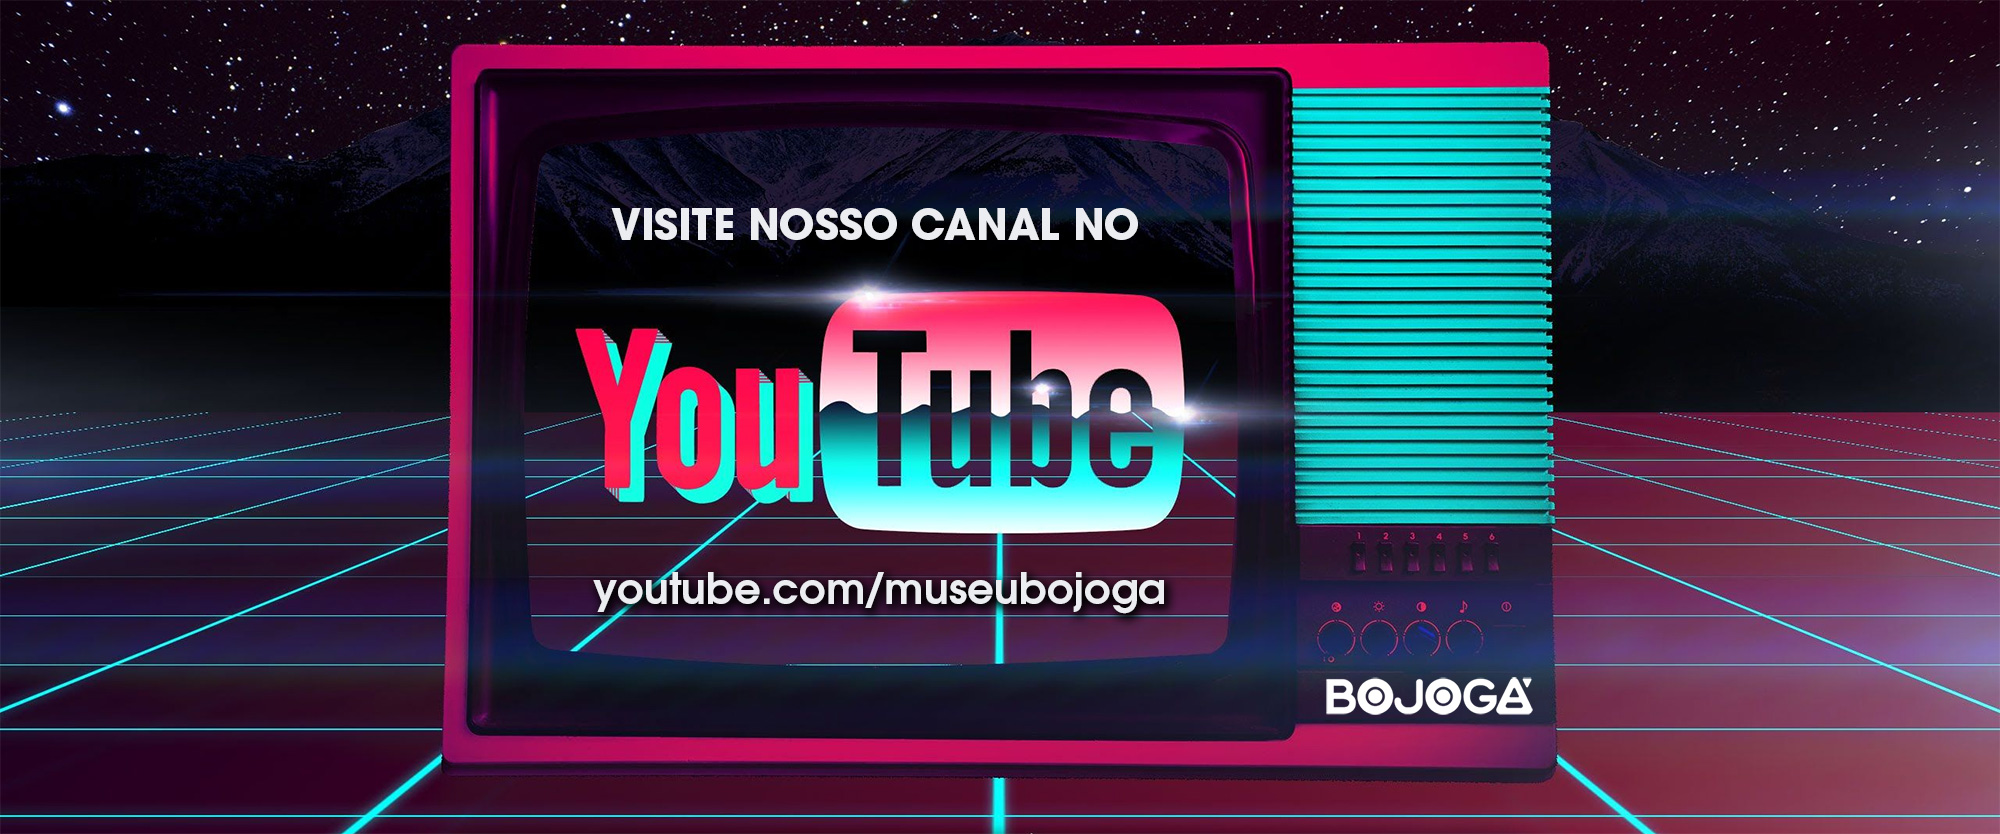 Museu Bojogá no YouTube – Bojogá 2228576d40